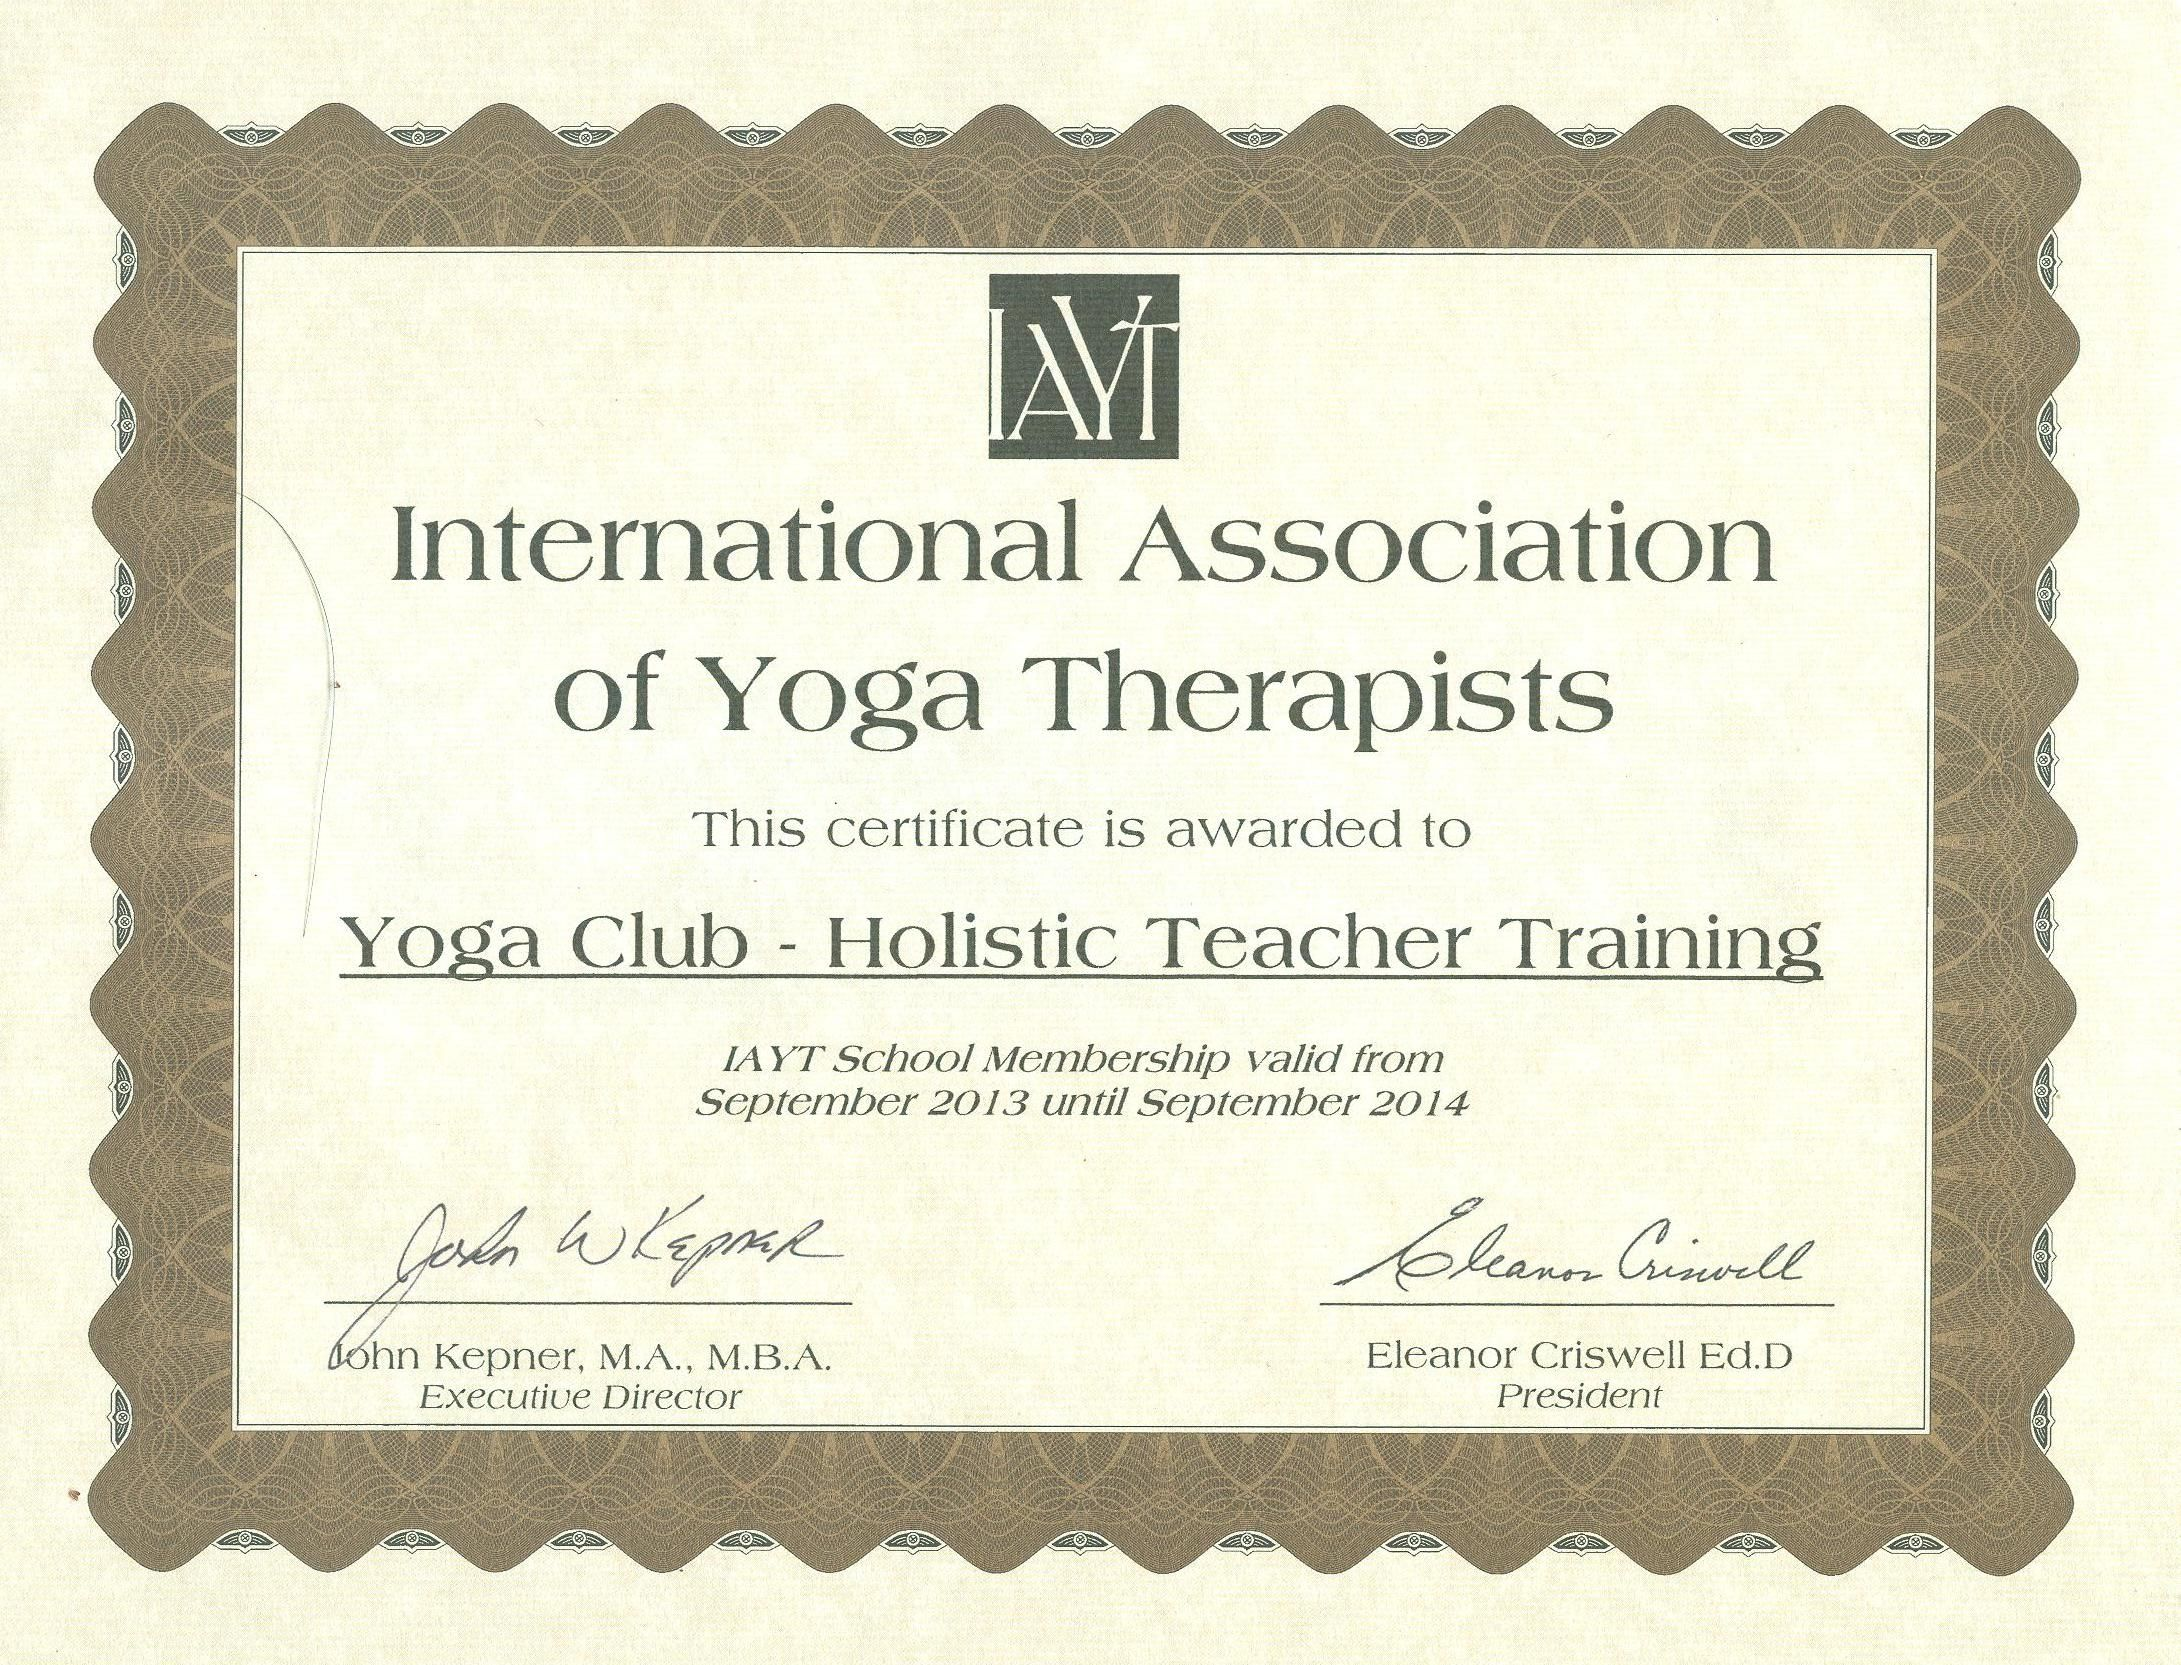 Yoga alliance teacher training certificate template learn about yoga alliance teacher training certificate template learn about yoga today and improve your life style xflitez Gallery